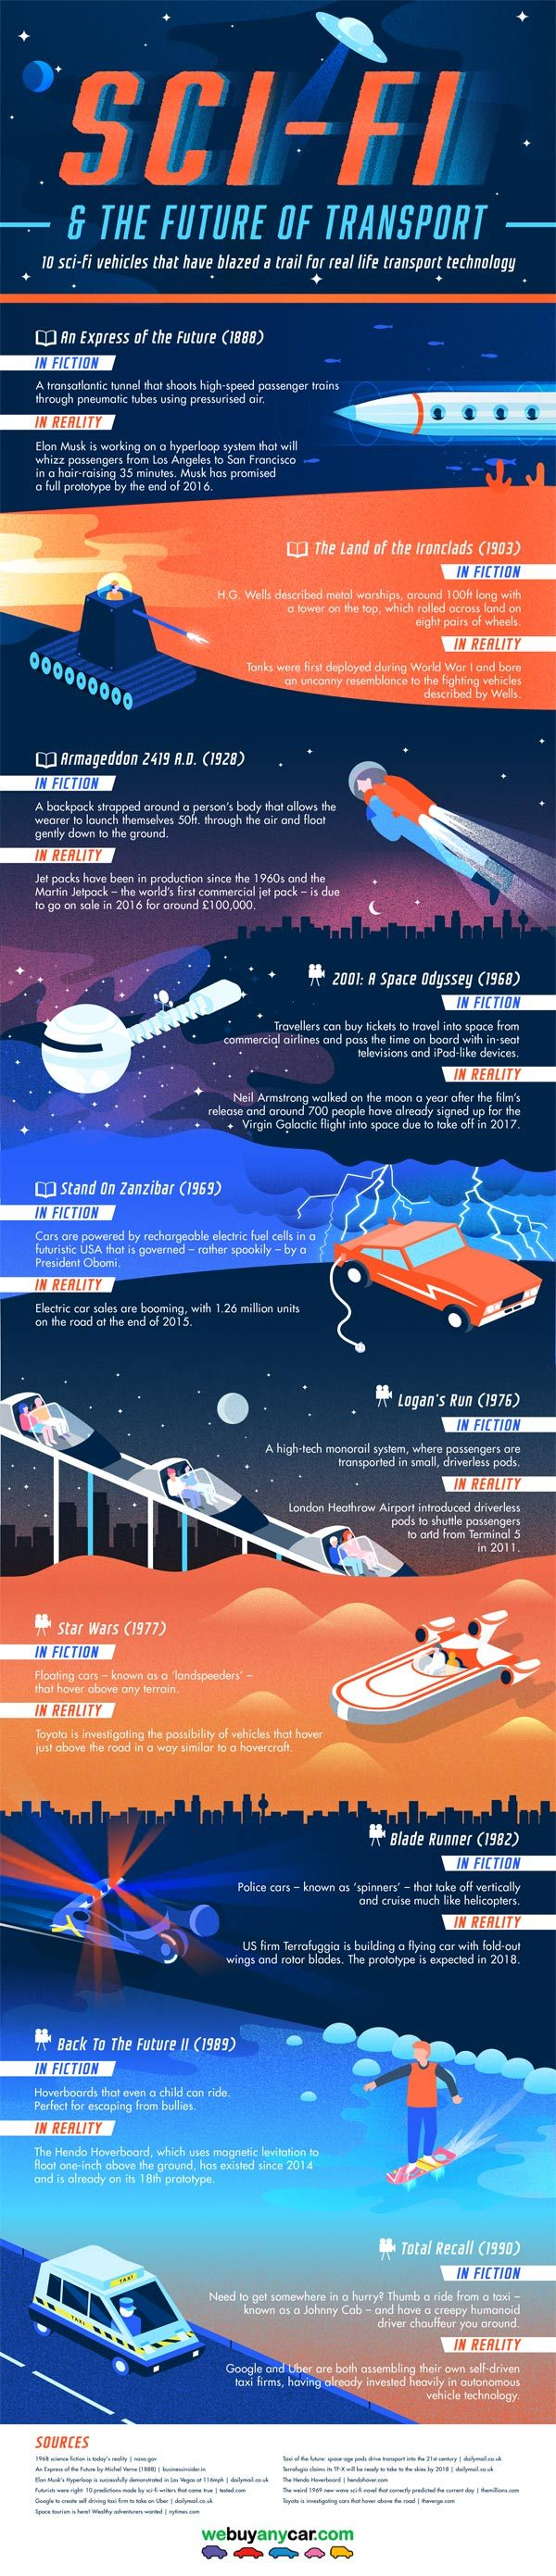 10-sci-fi-vehicles-that-predicted-the-future-of-transportation-infographic